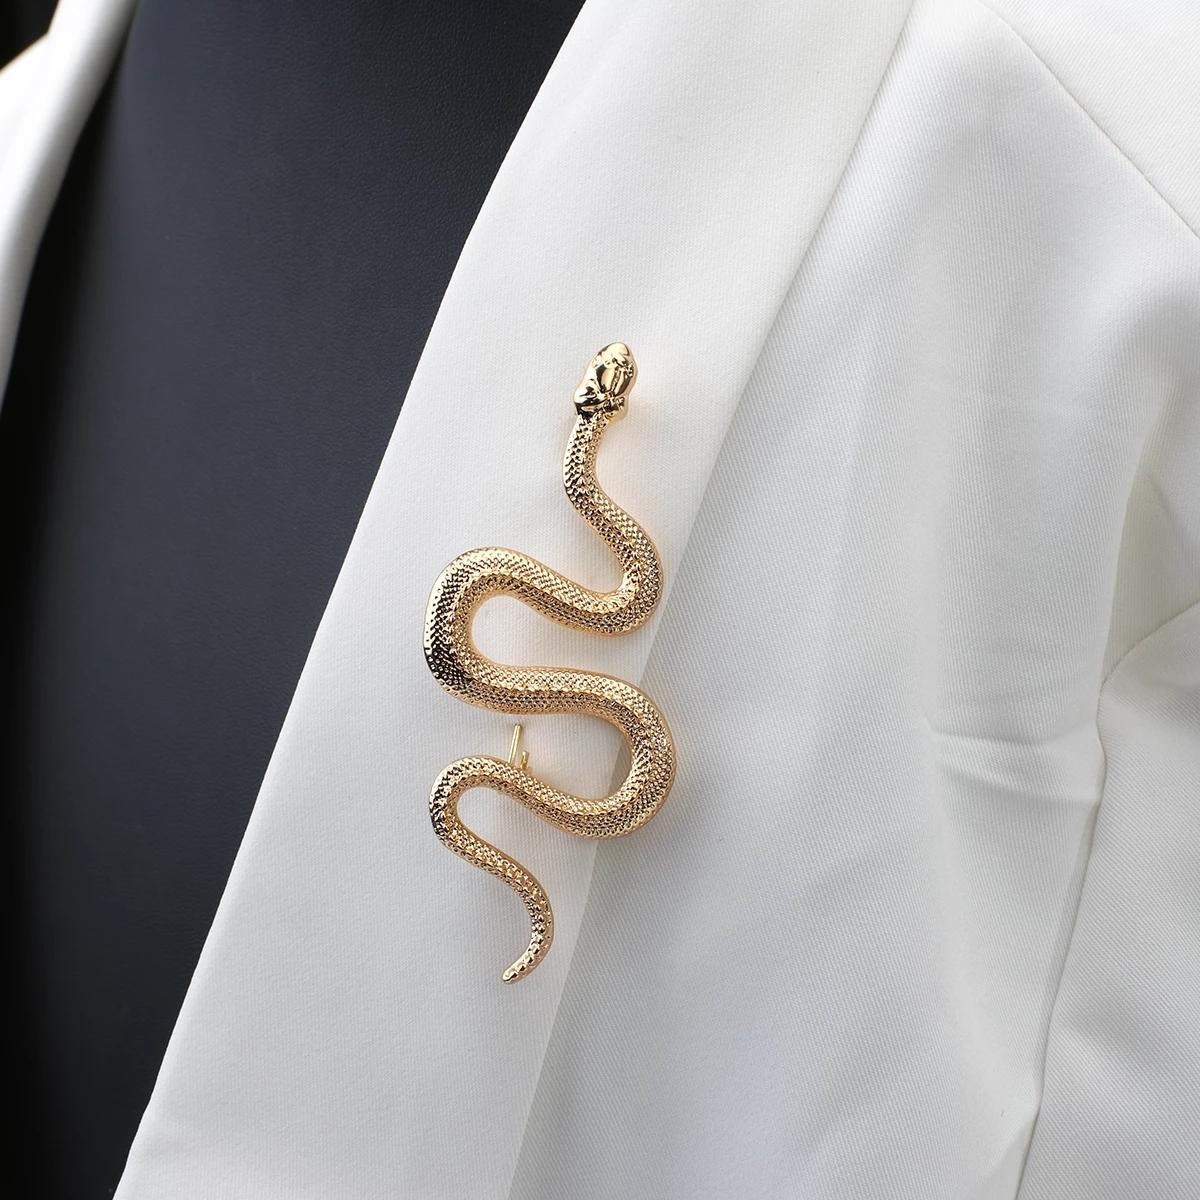 Diseño único Snake Broches Gold Color Mujer Men Lady Luxury Metal Animal Broche Pines Party Casual Jewelry Regalos